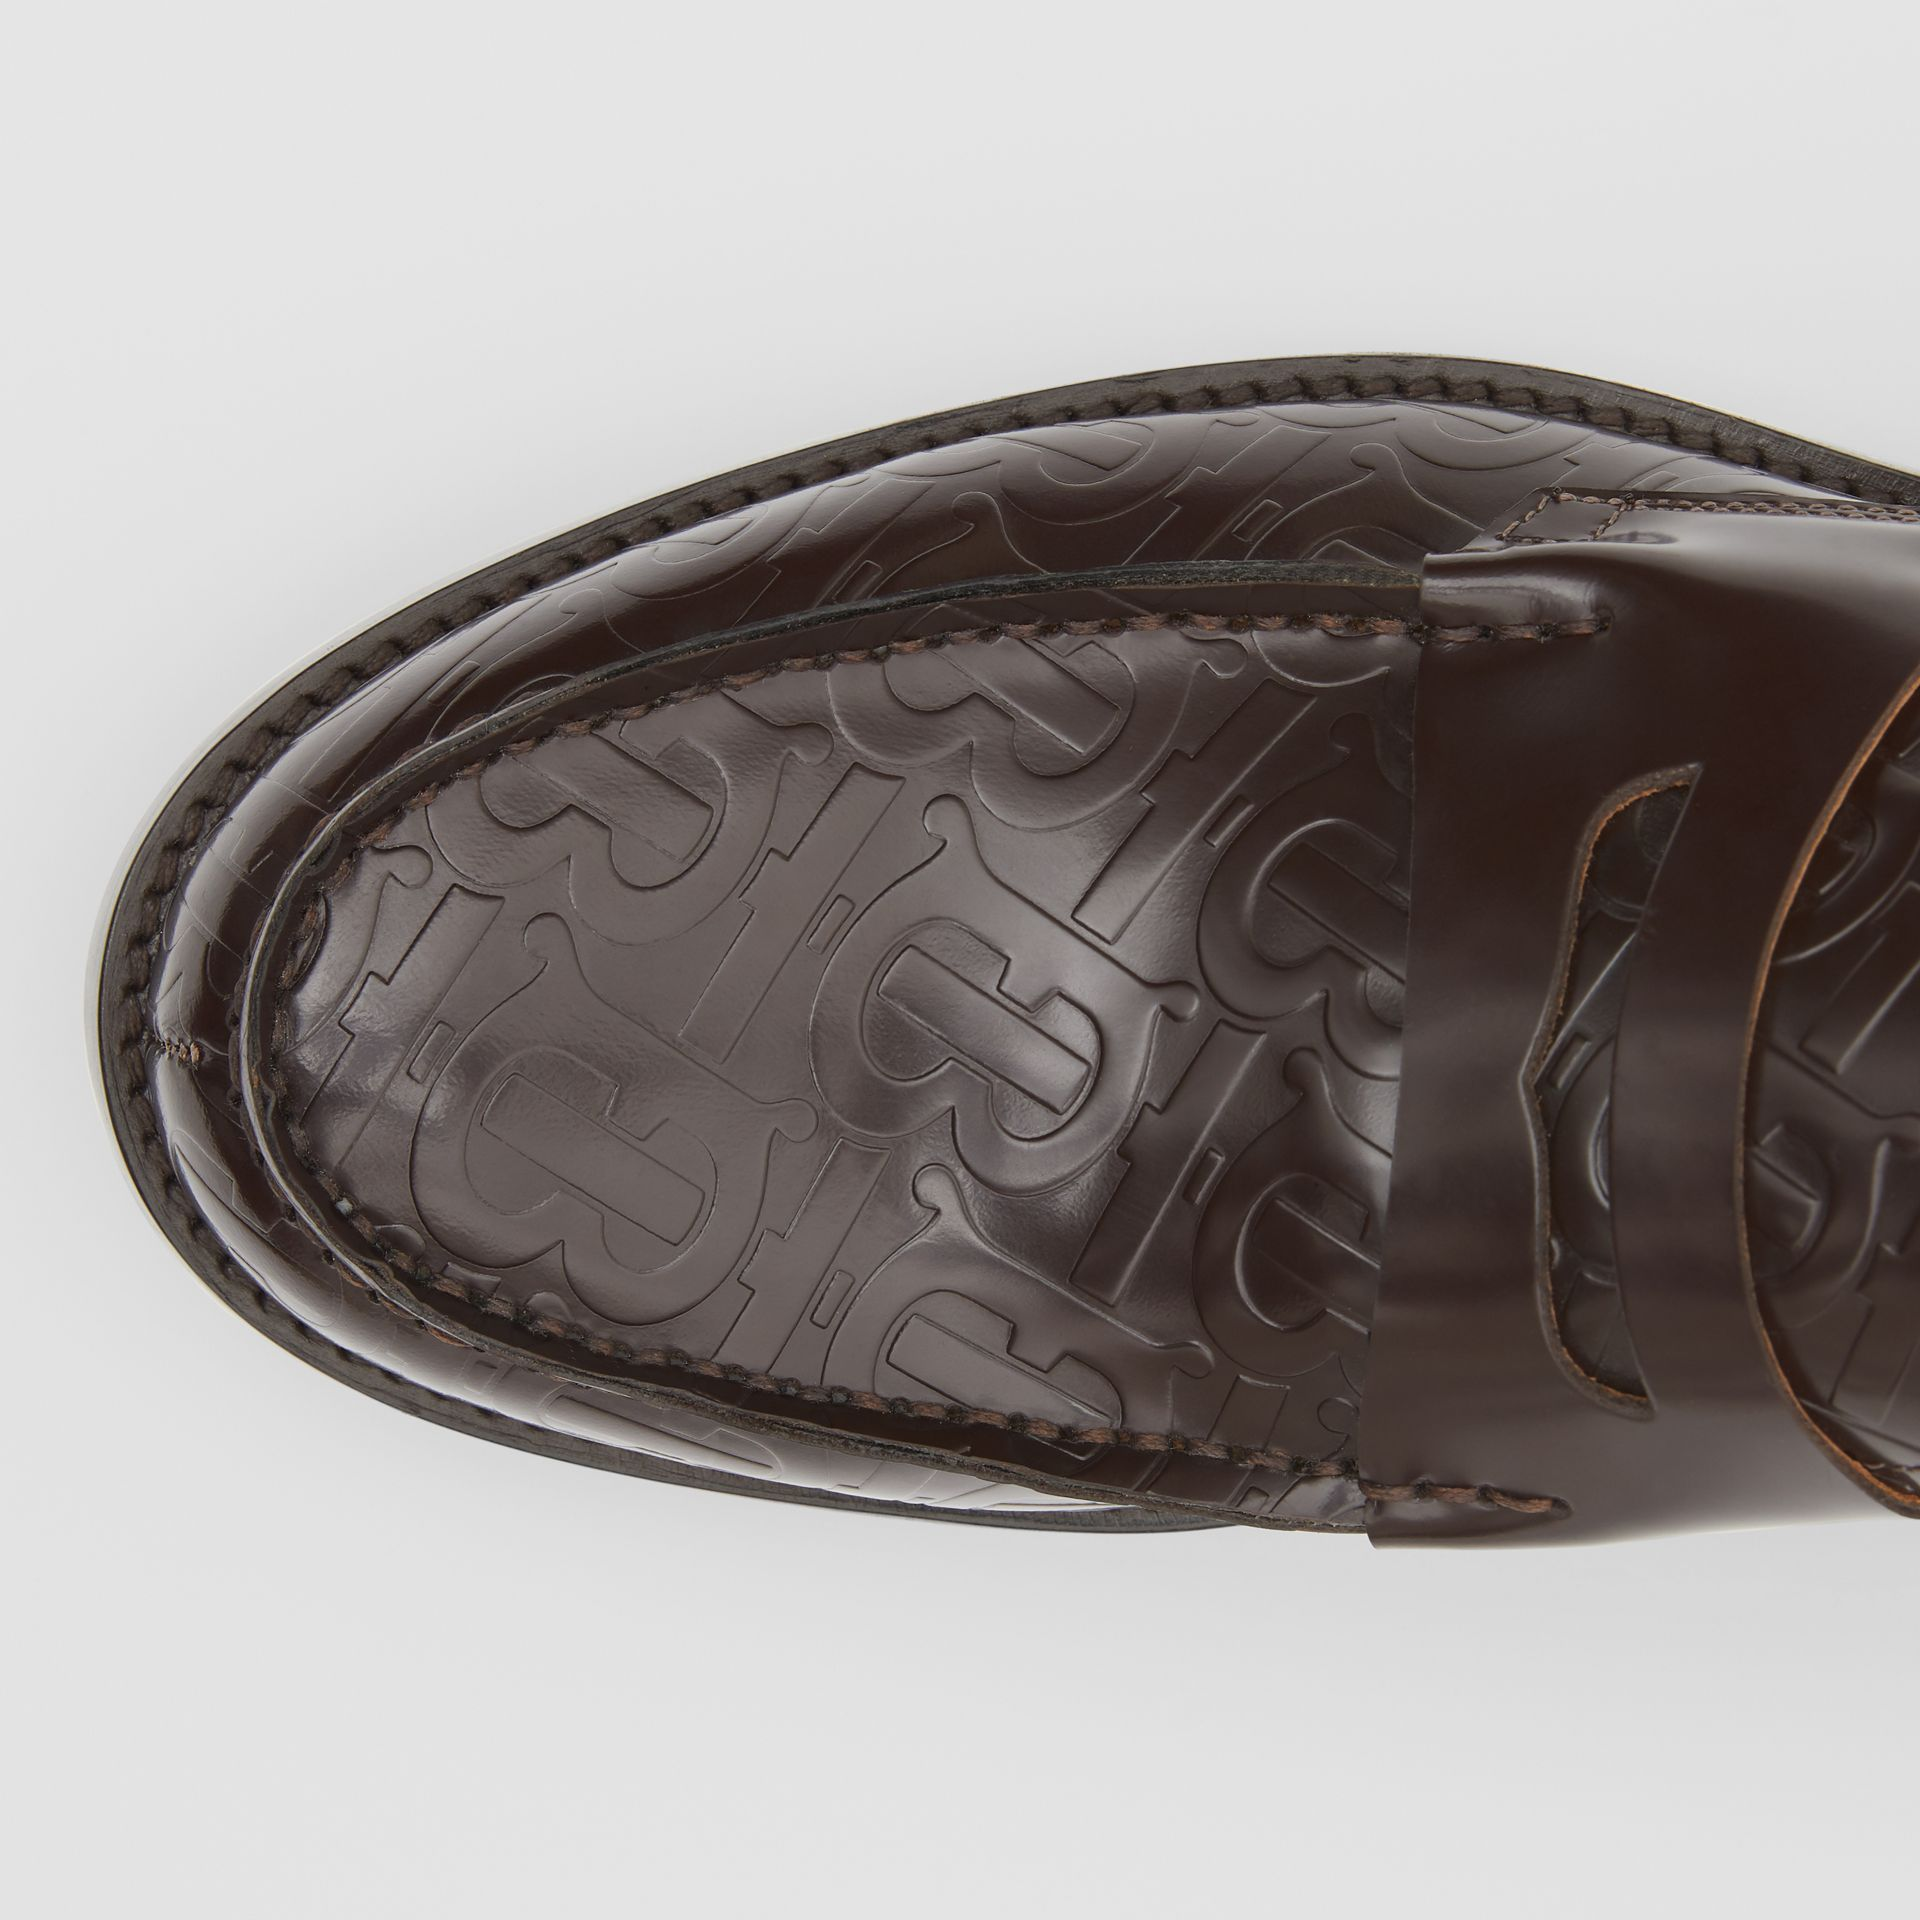 D-ring Detail Monogram Leather Loafers in Chocolate - Men | Burberry - gallery image 1